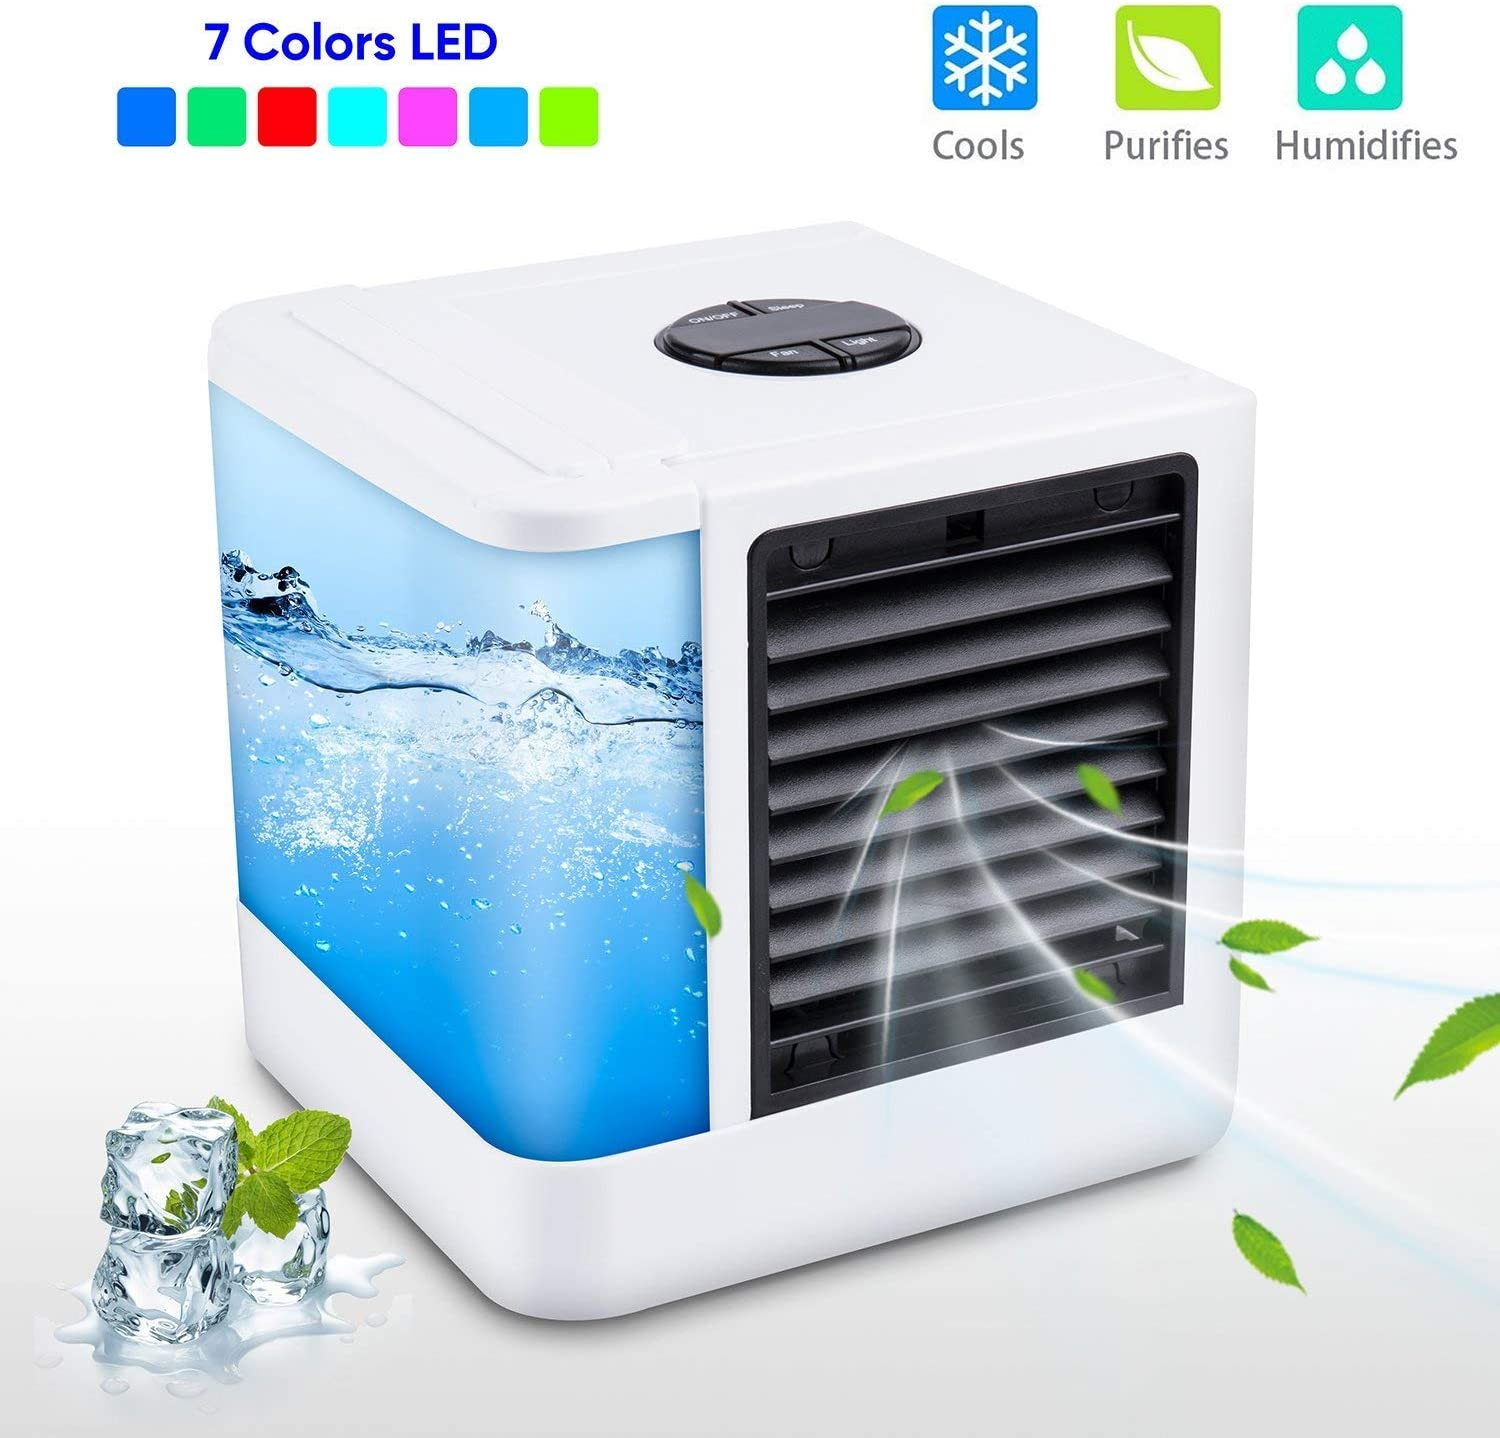 Air Cooler Mini Portable Air Conditioner Humidifier Purifier Light Desktop Air Cooling Fan For Office Home